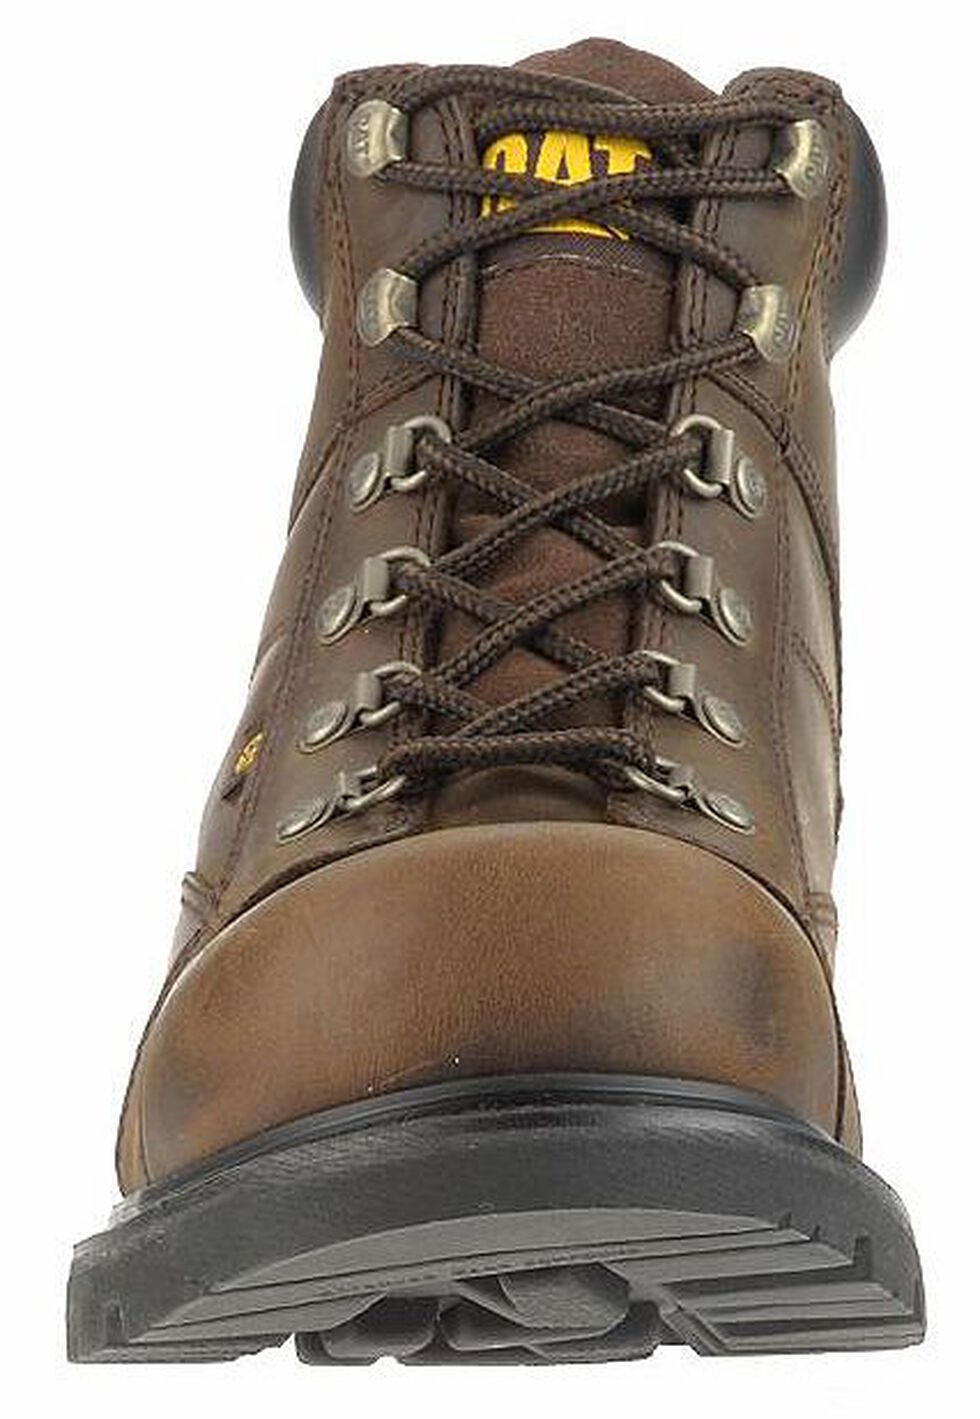 "Caterpillar 6"" Mortar Lace-Up Work Boots - Steel Toe, Dark Brown, hi-res"